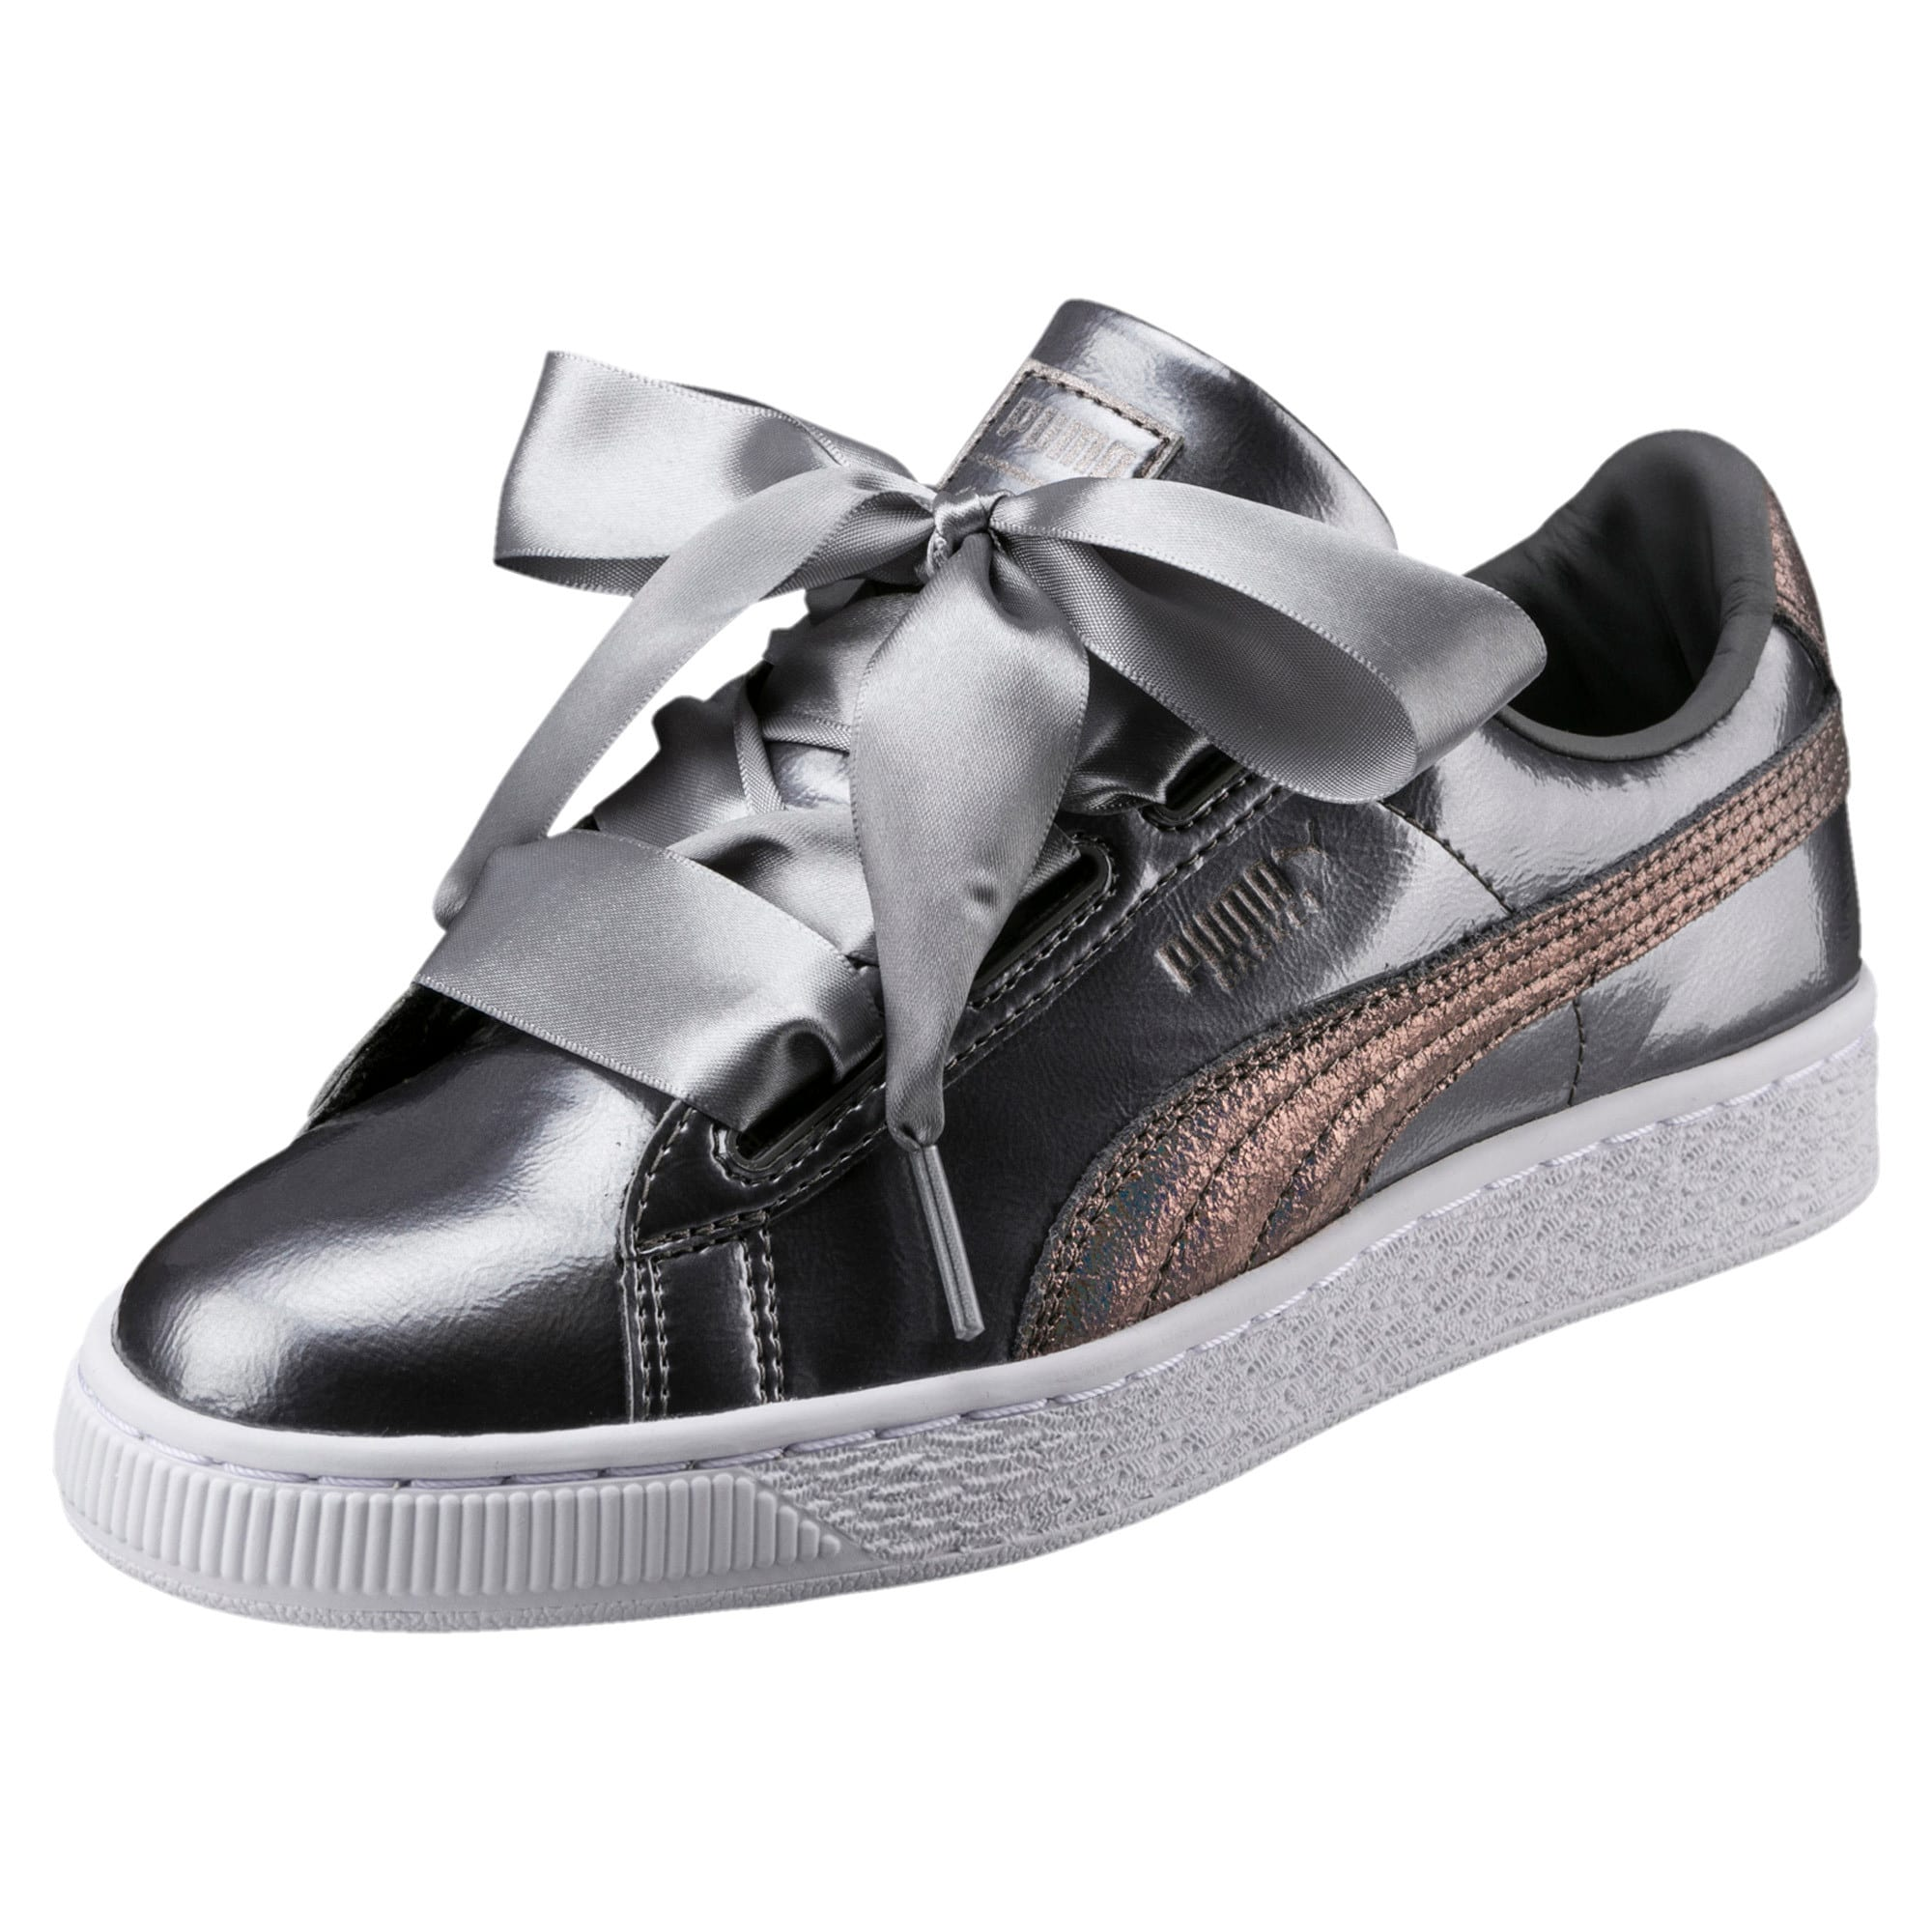 Thumbnail 1 of Basket Heart Lunar Lux Jr Trainers, Smoked Pearl, medium-IND